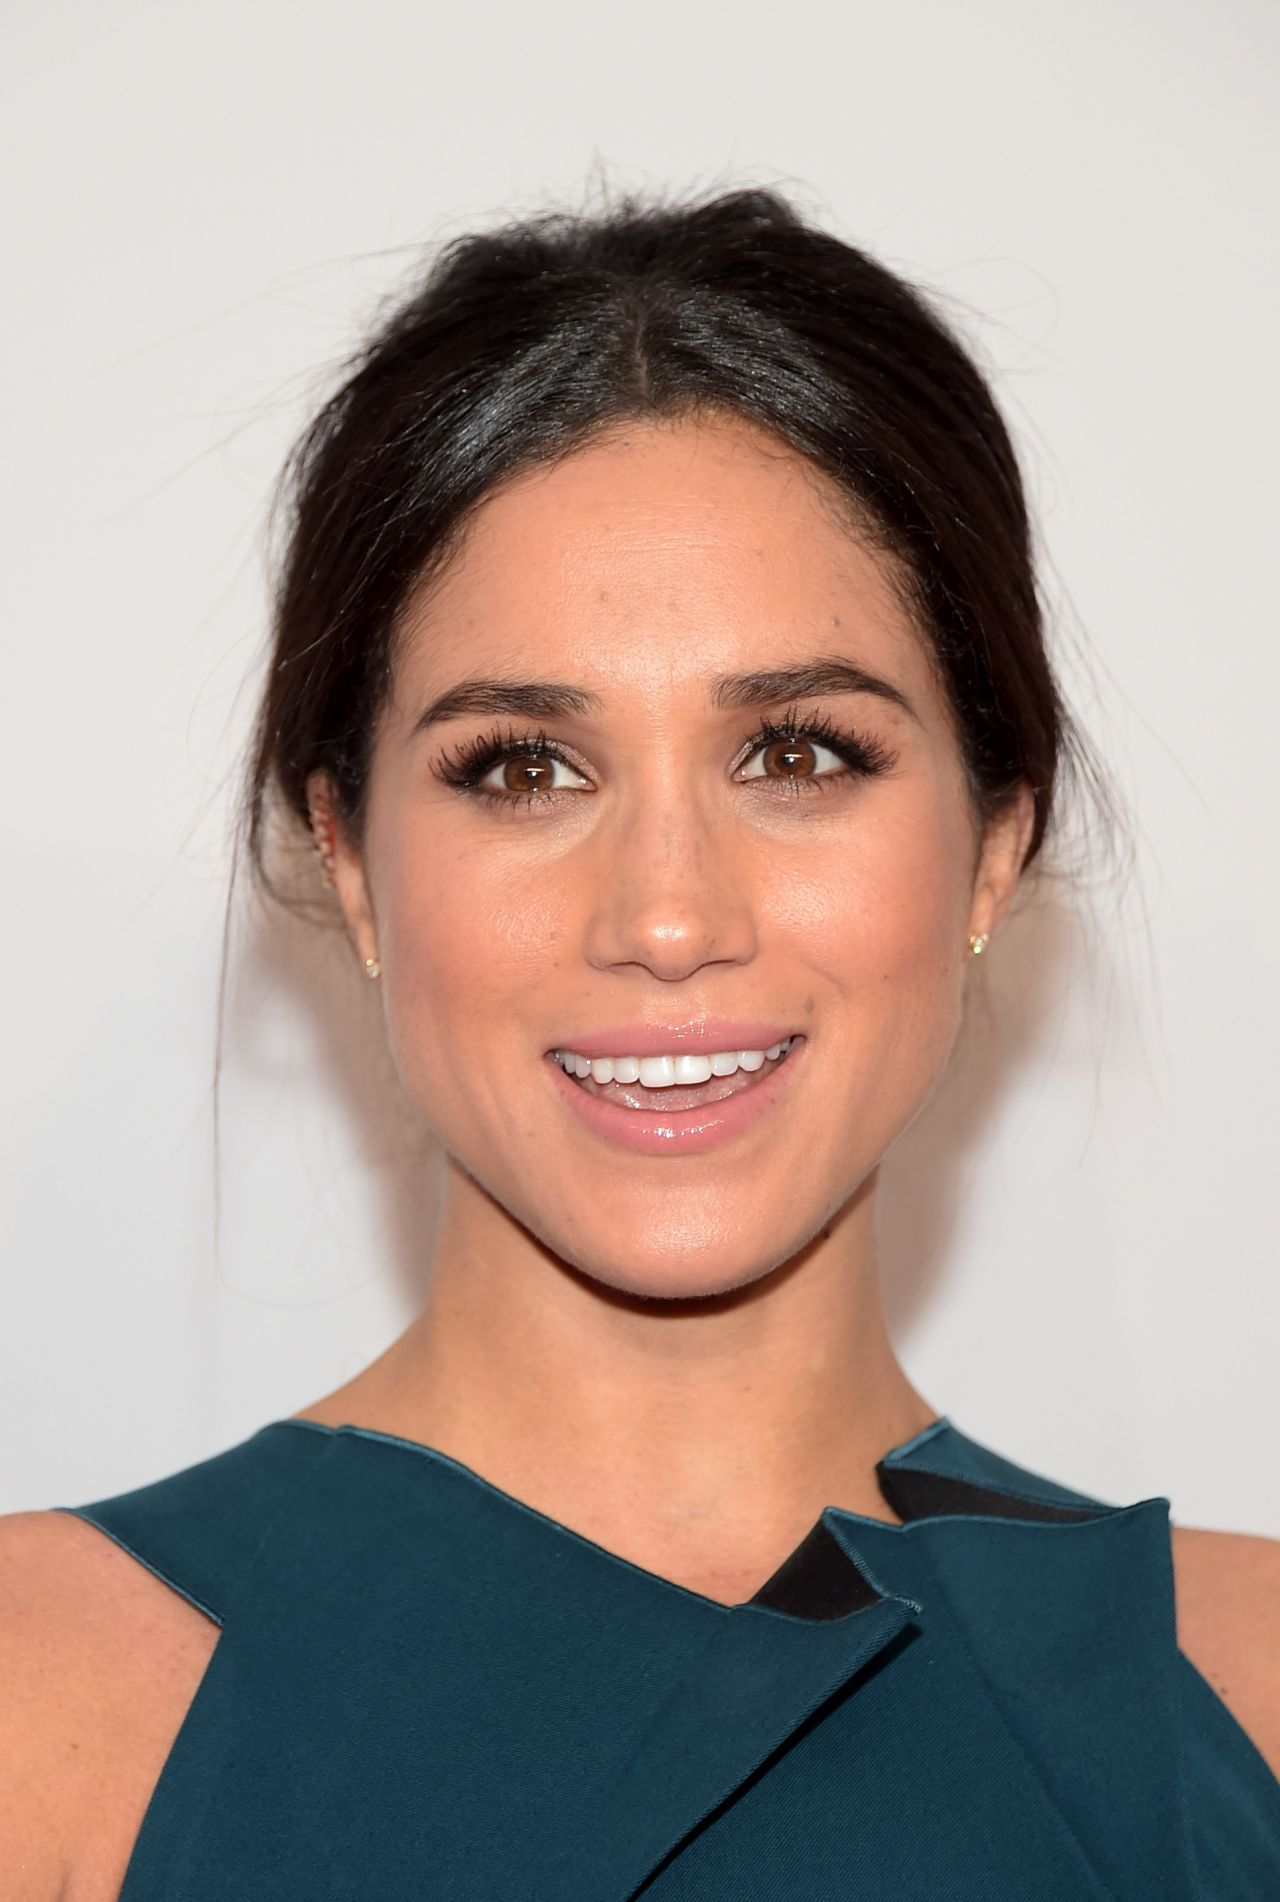 Meghan Markle An Enduring Vision A Benefit For The